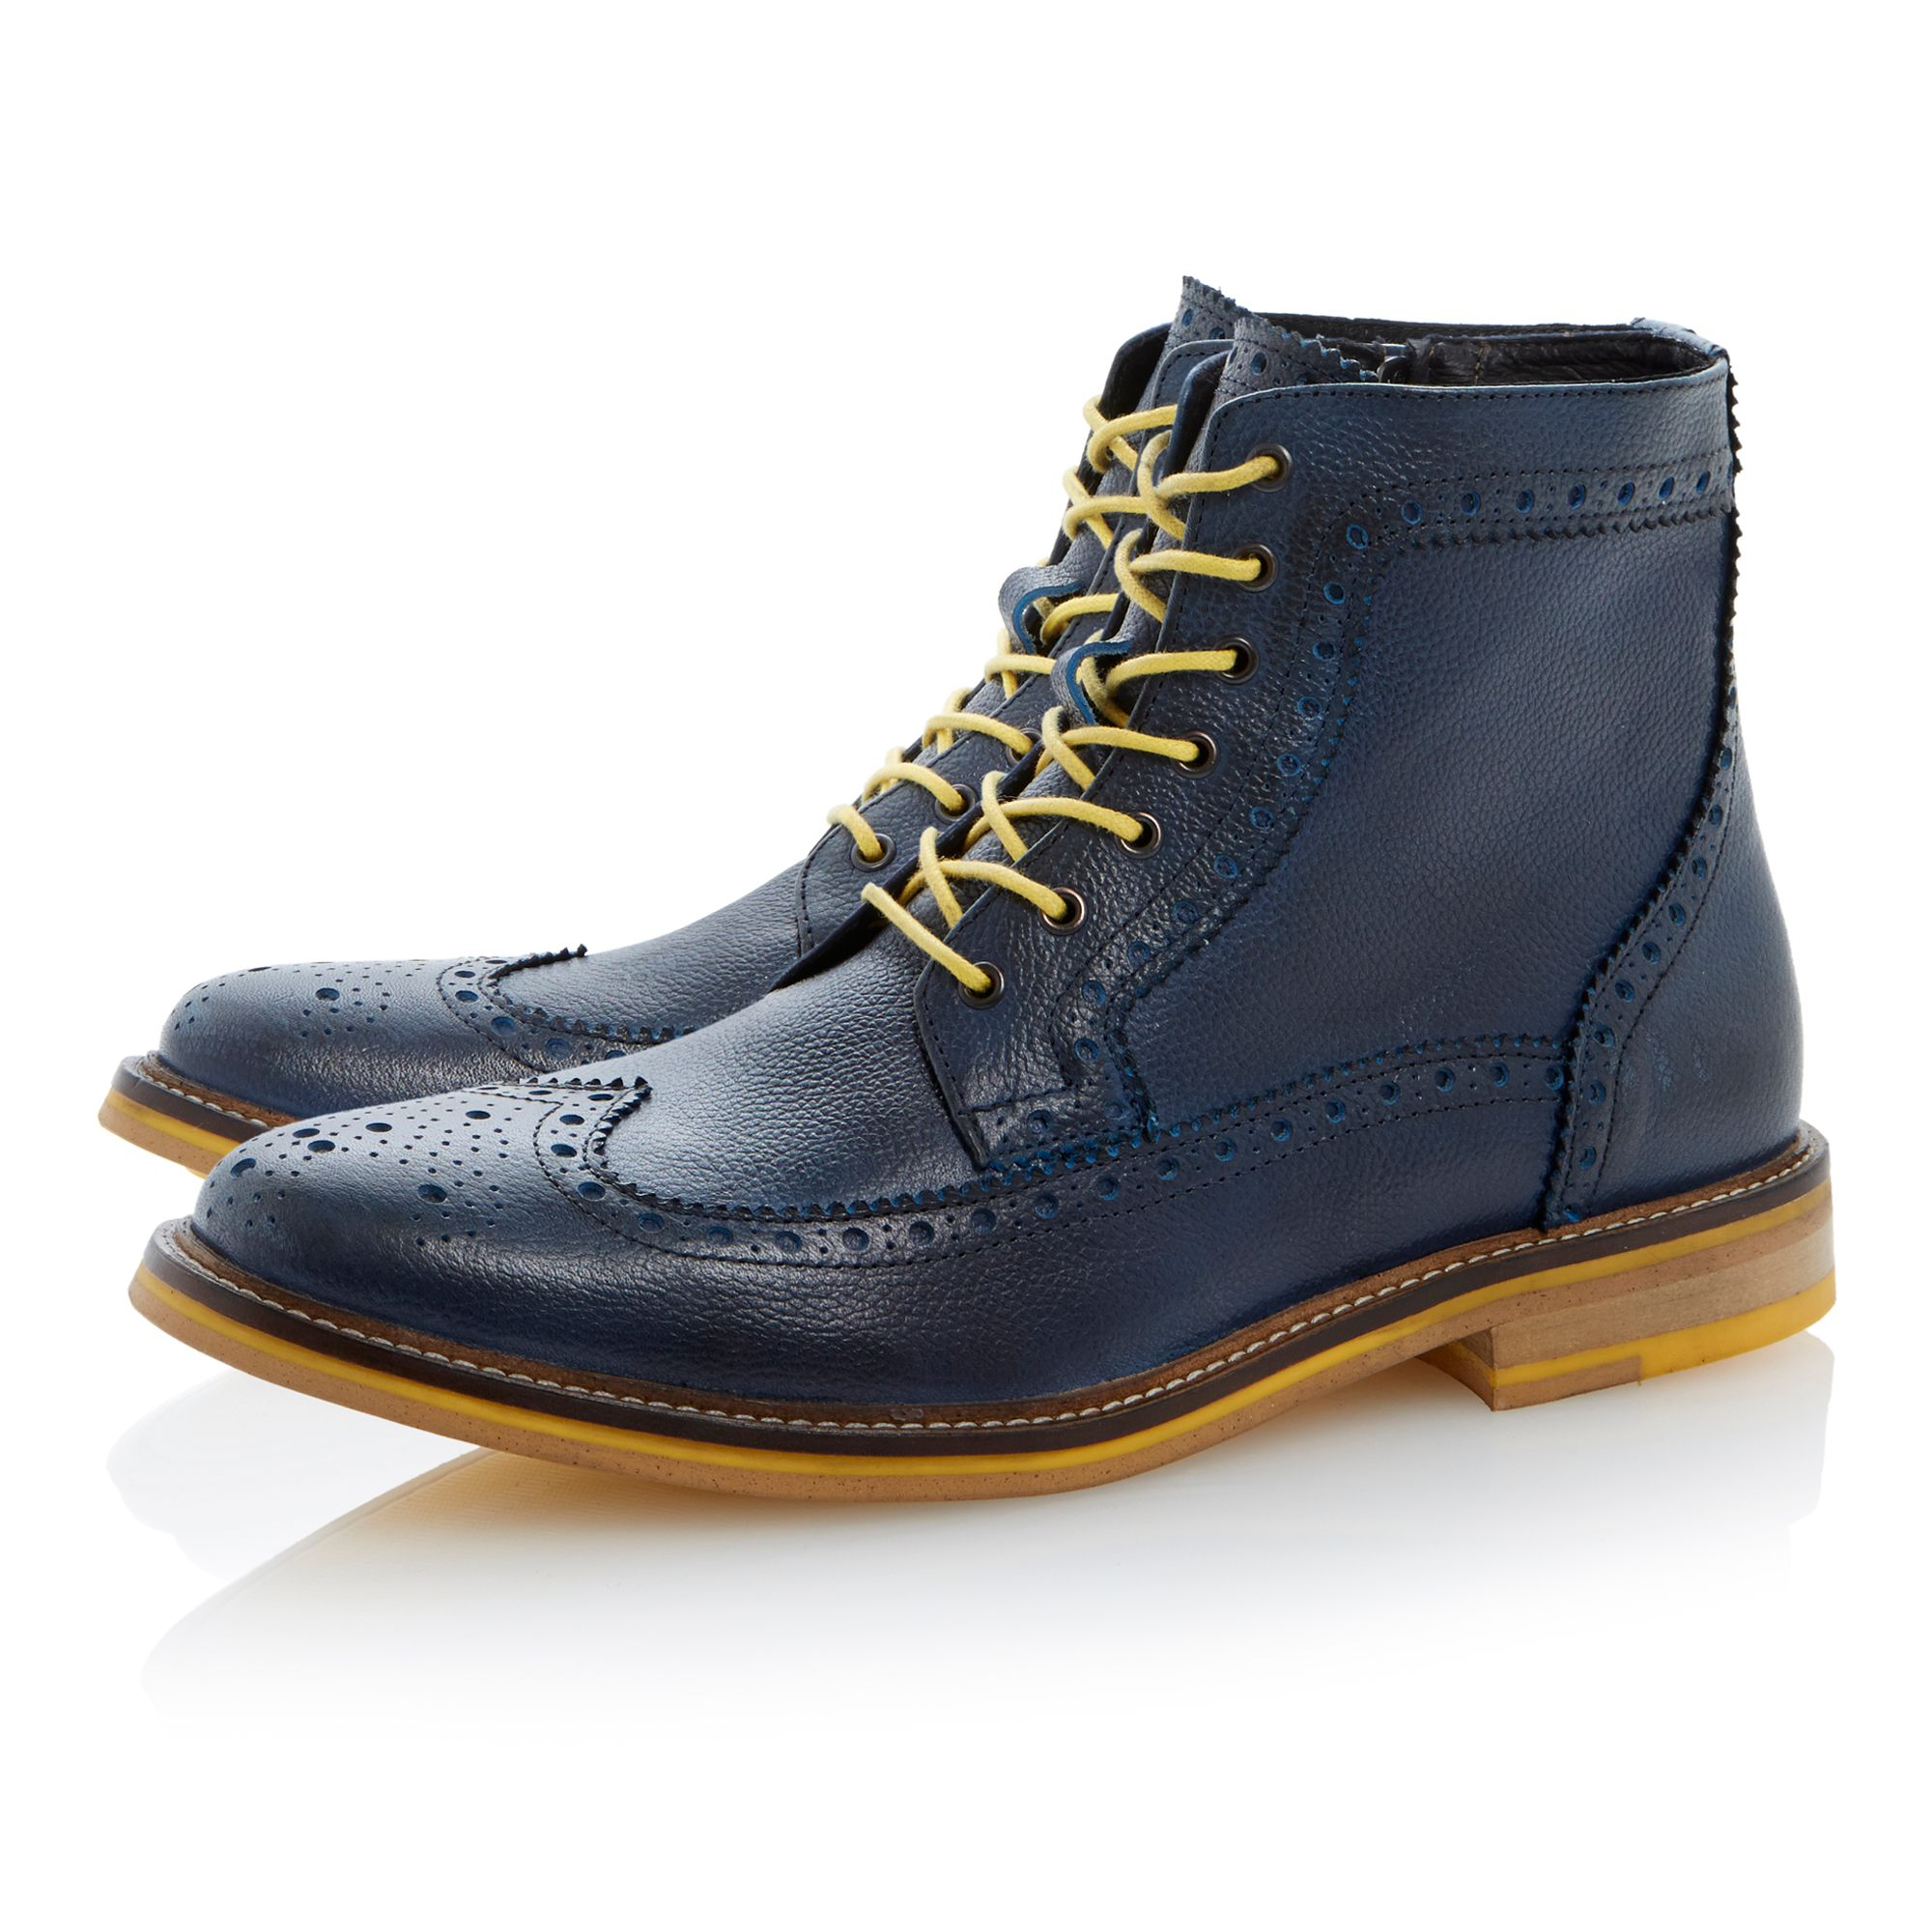 Cambridge heath colour pop brogue boot